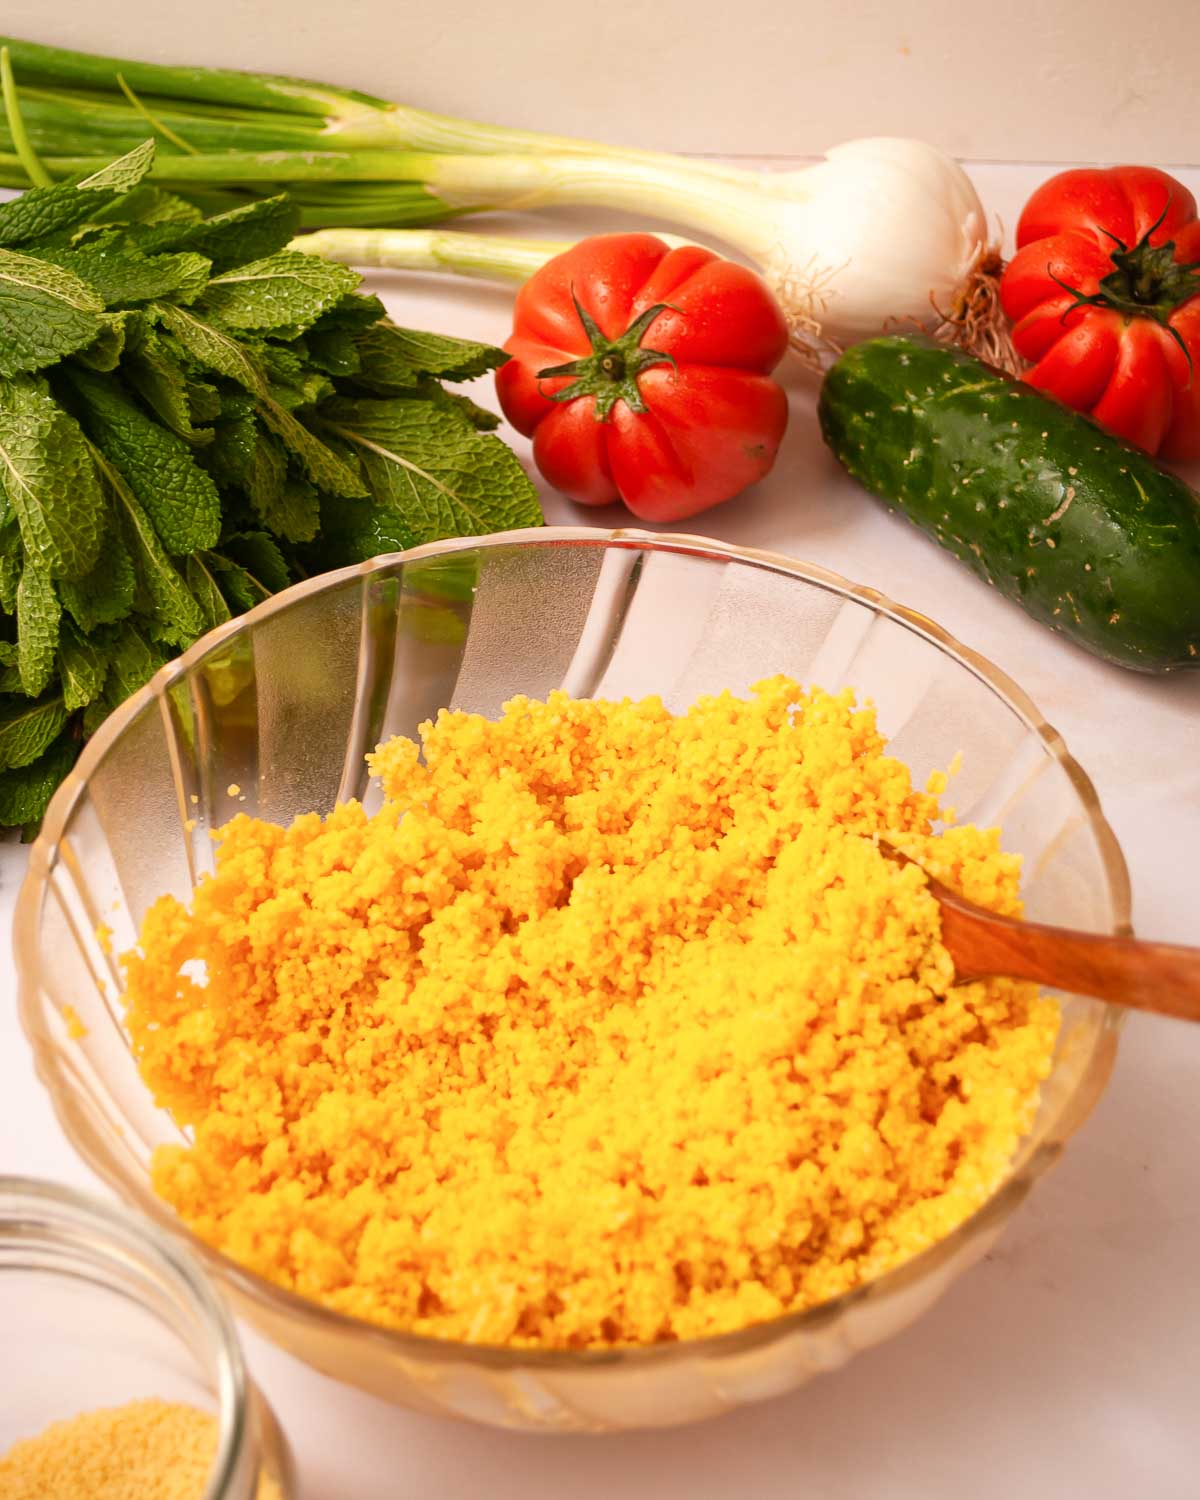 Bowl of golden couscous with turmeric.